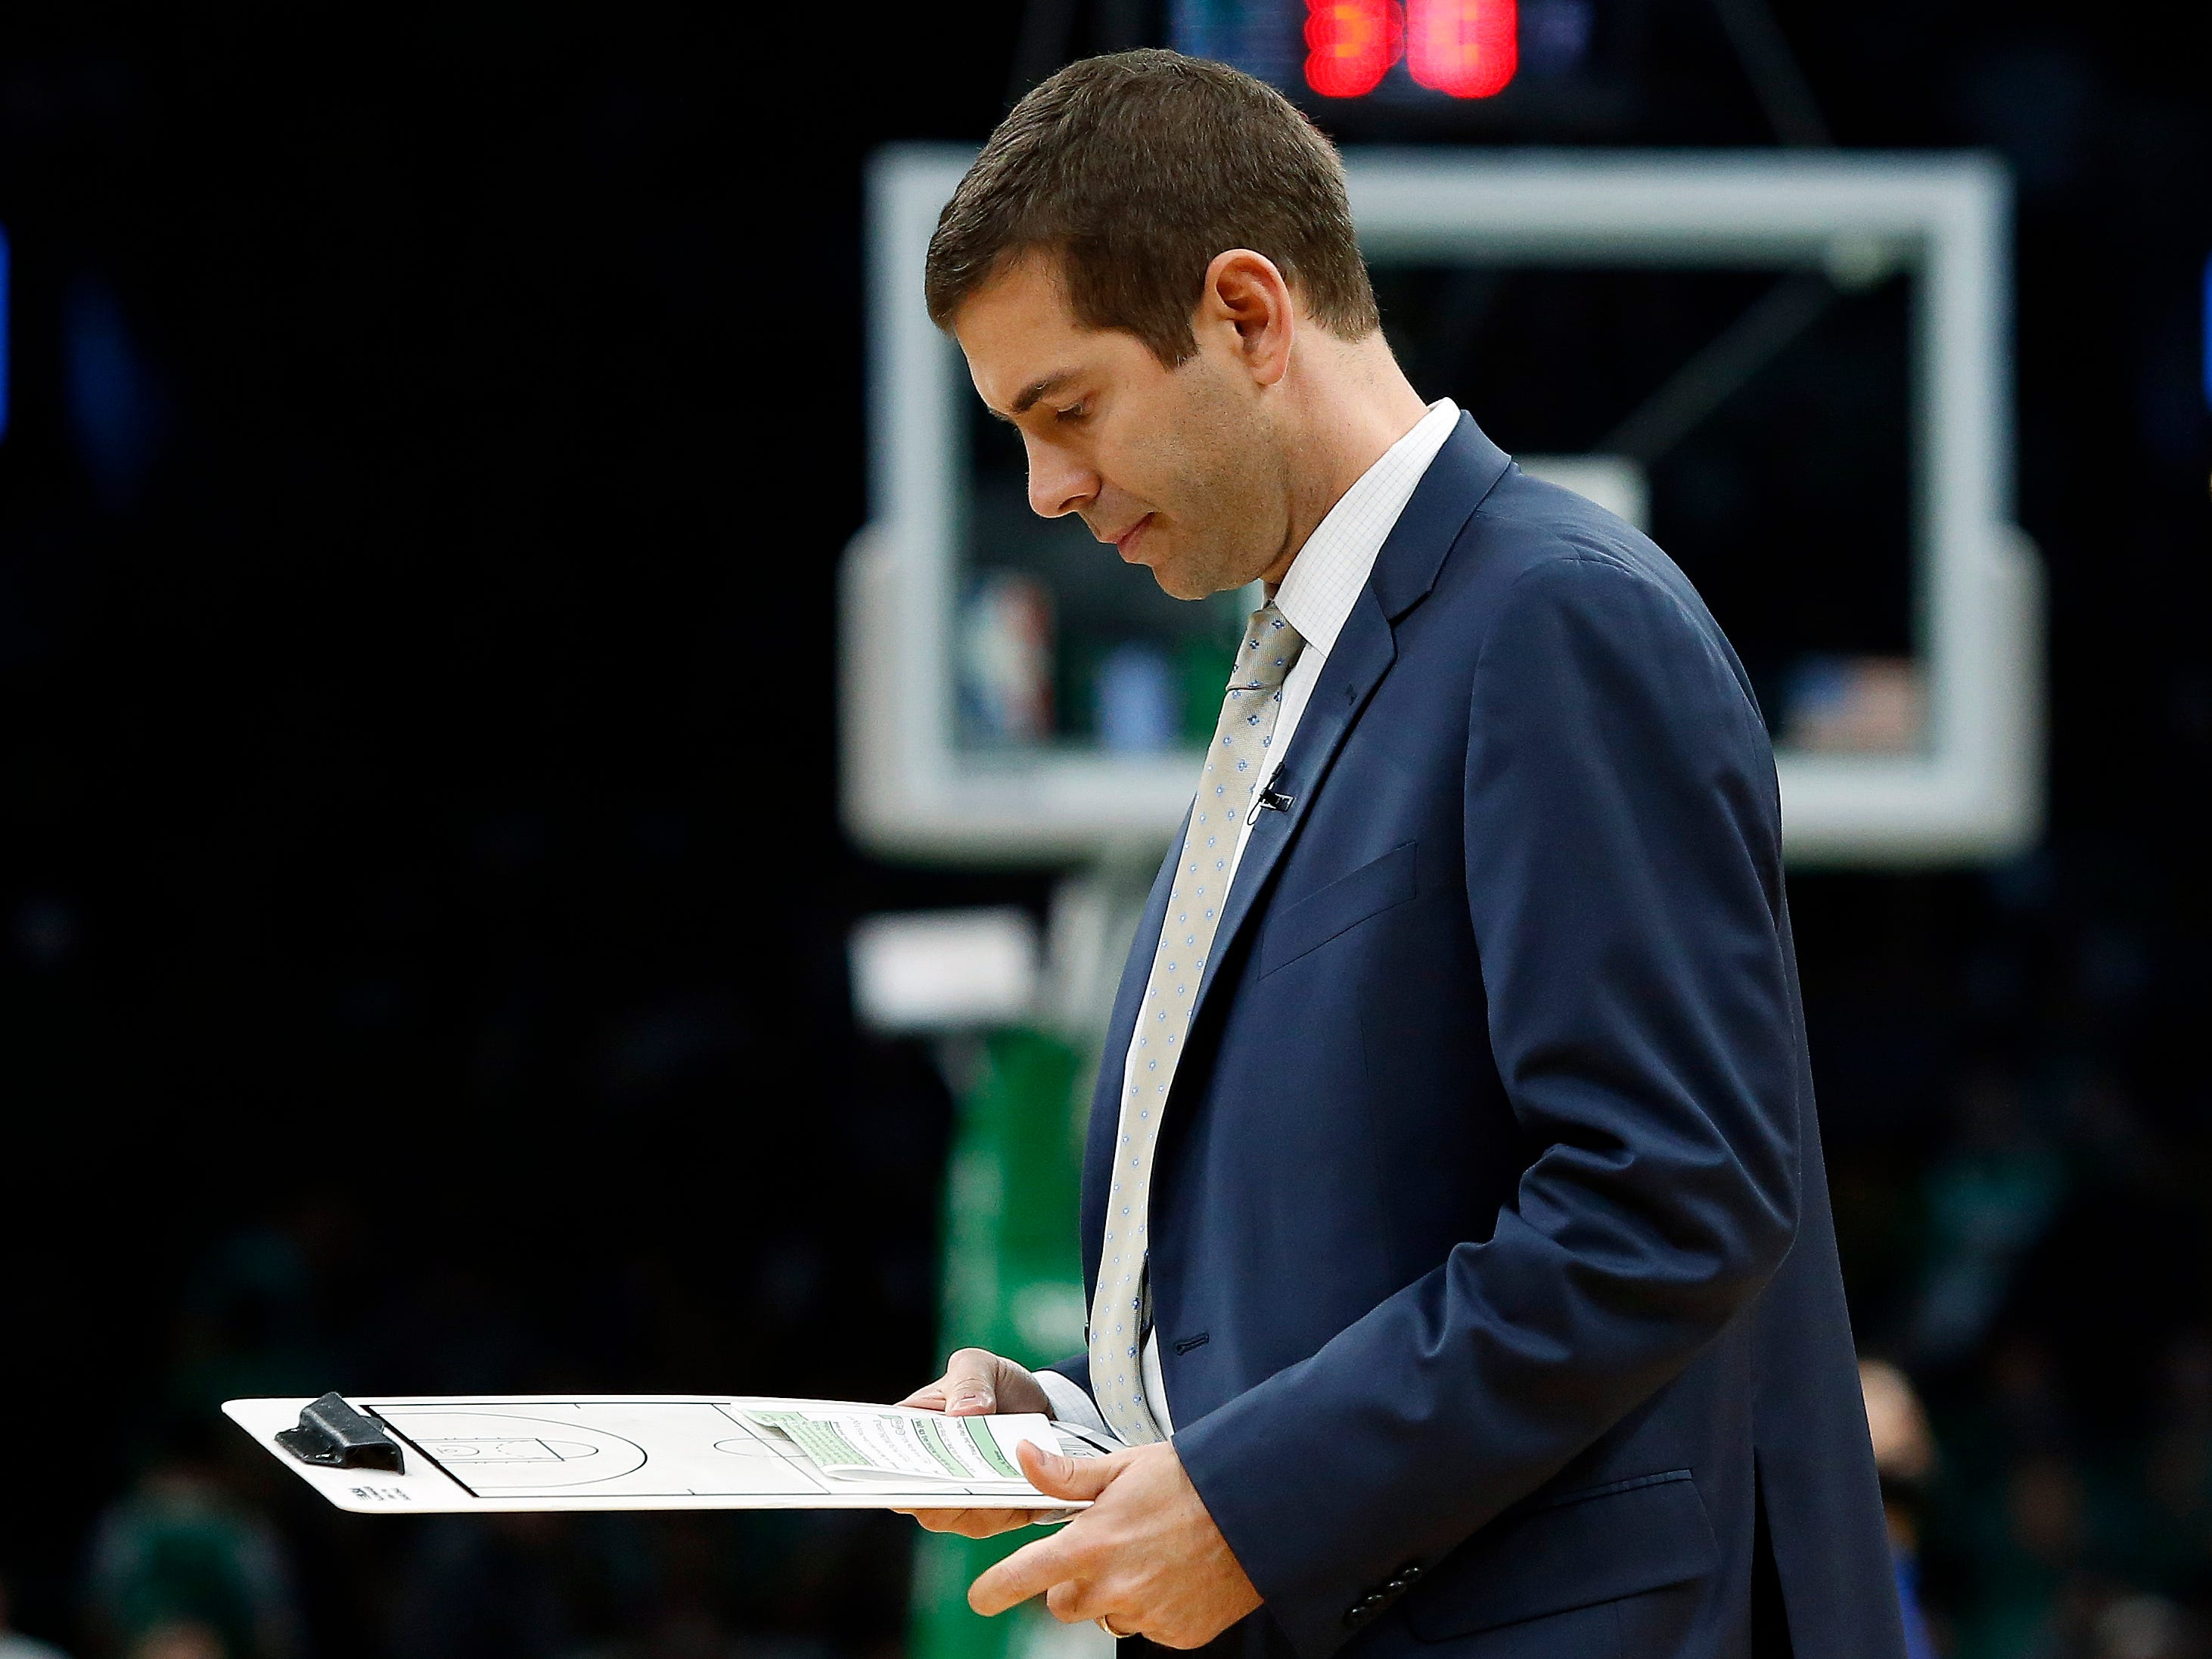 Boston Celtics head coach Brad Stevens looks over his notes during a timeout in the second quarter of Game 1 of a first-round NBA basketball playoff series against the Indiana Pacers, Sunday, April 14, 2019, in Boston.